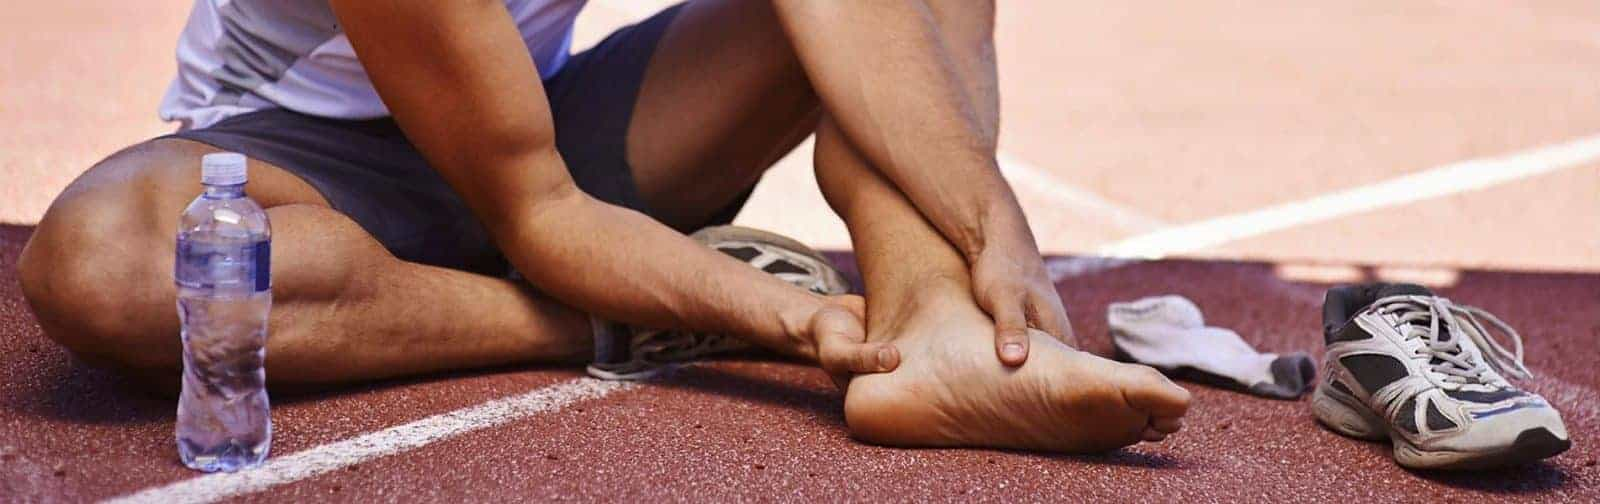 Ankle & Foot Physiotherapy - Foot Physiotherapy